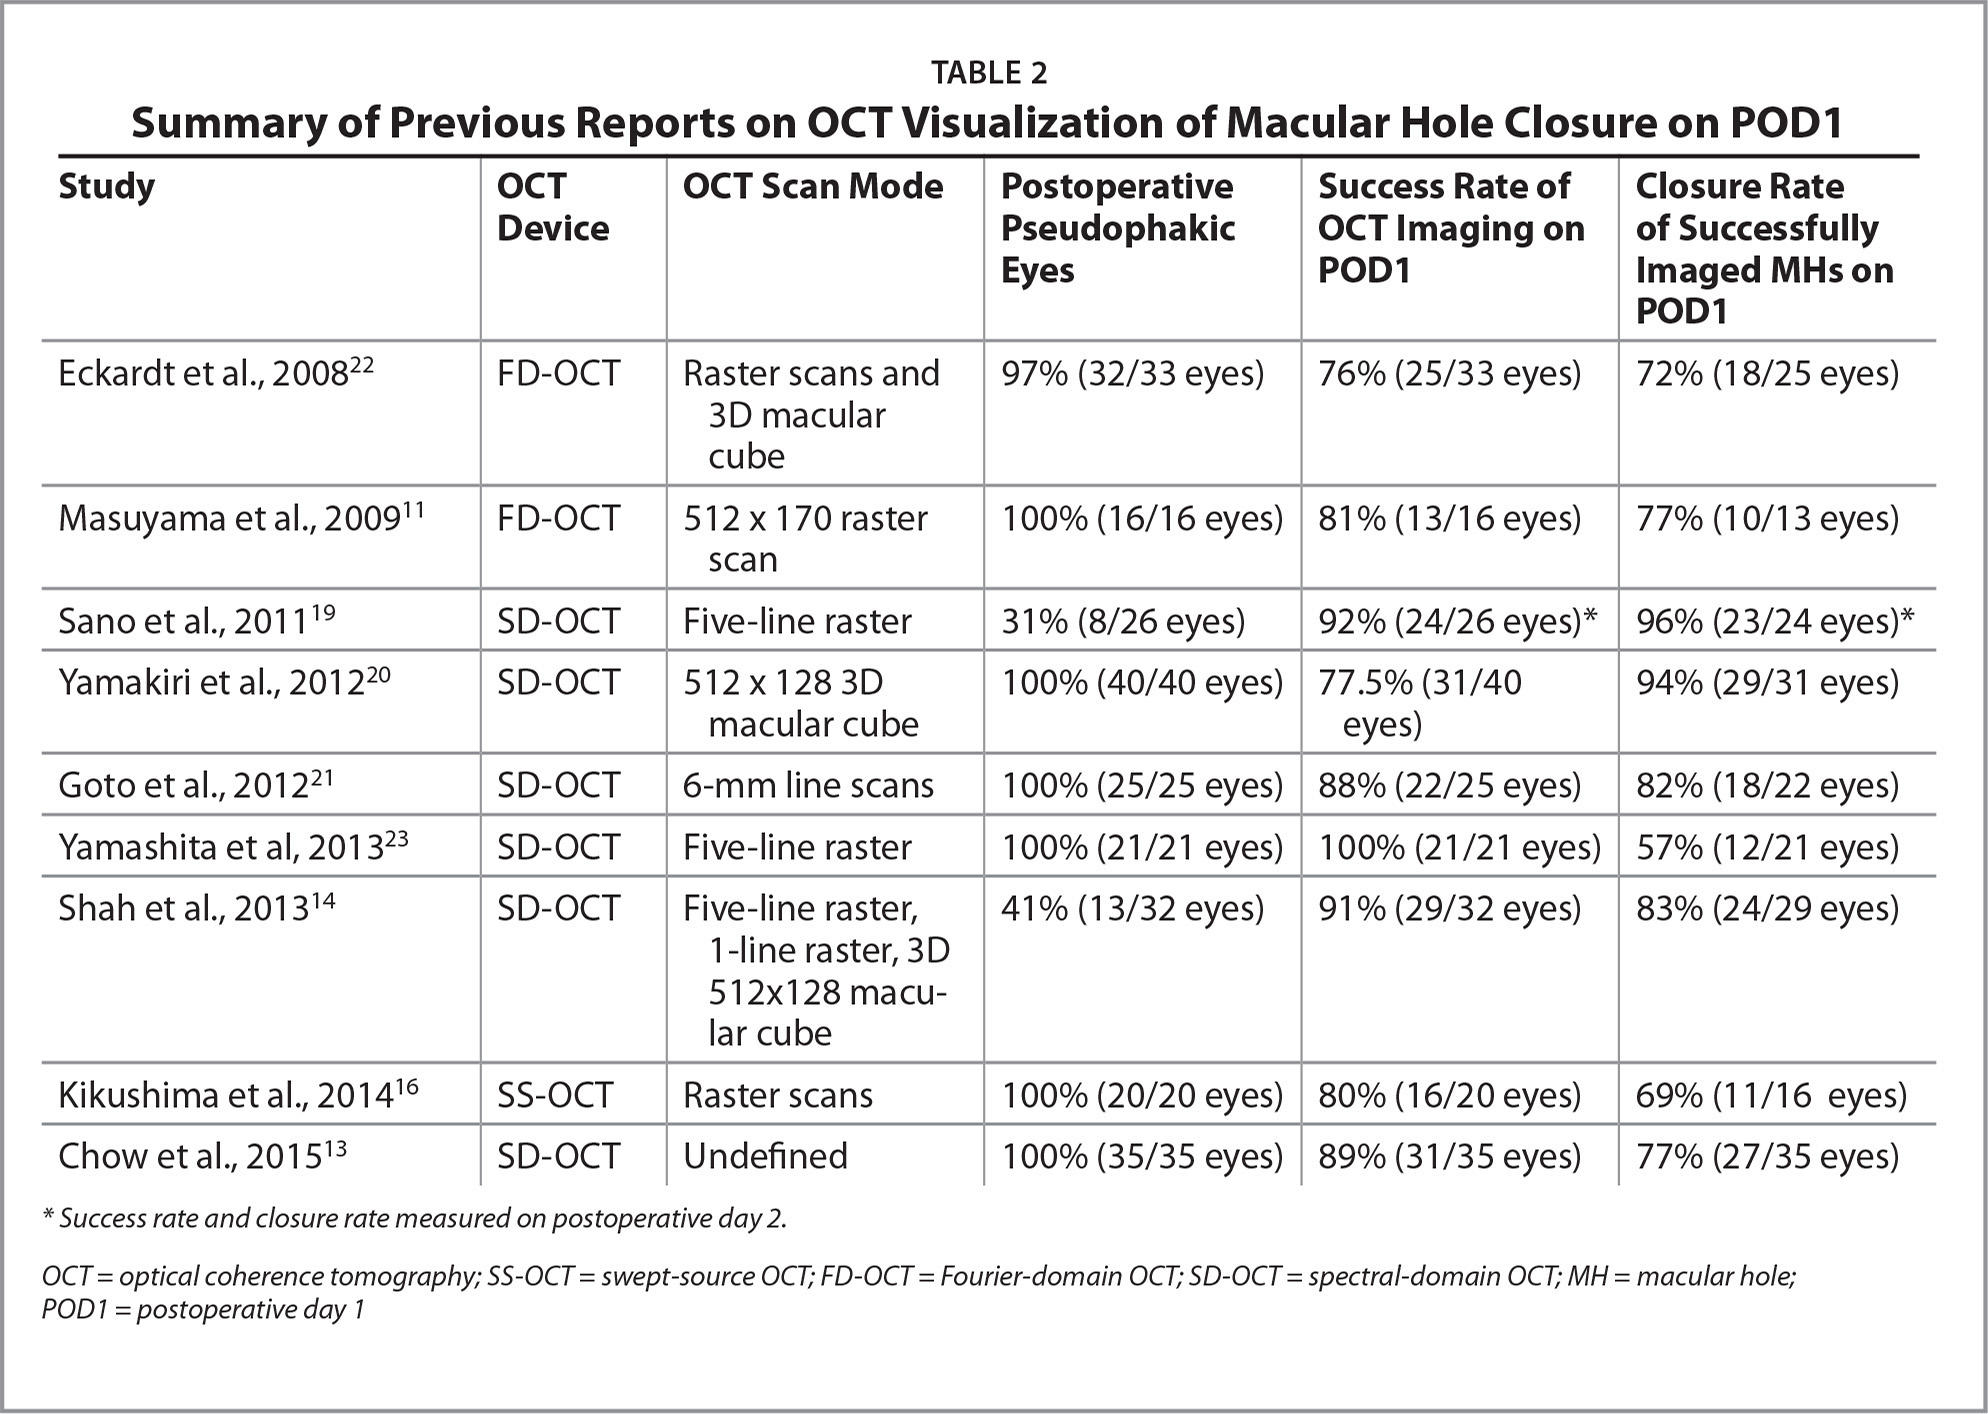 Summary of Previous Reports on OCT Visualization of Macular Hole Closure on POD1